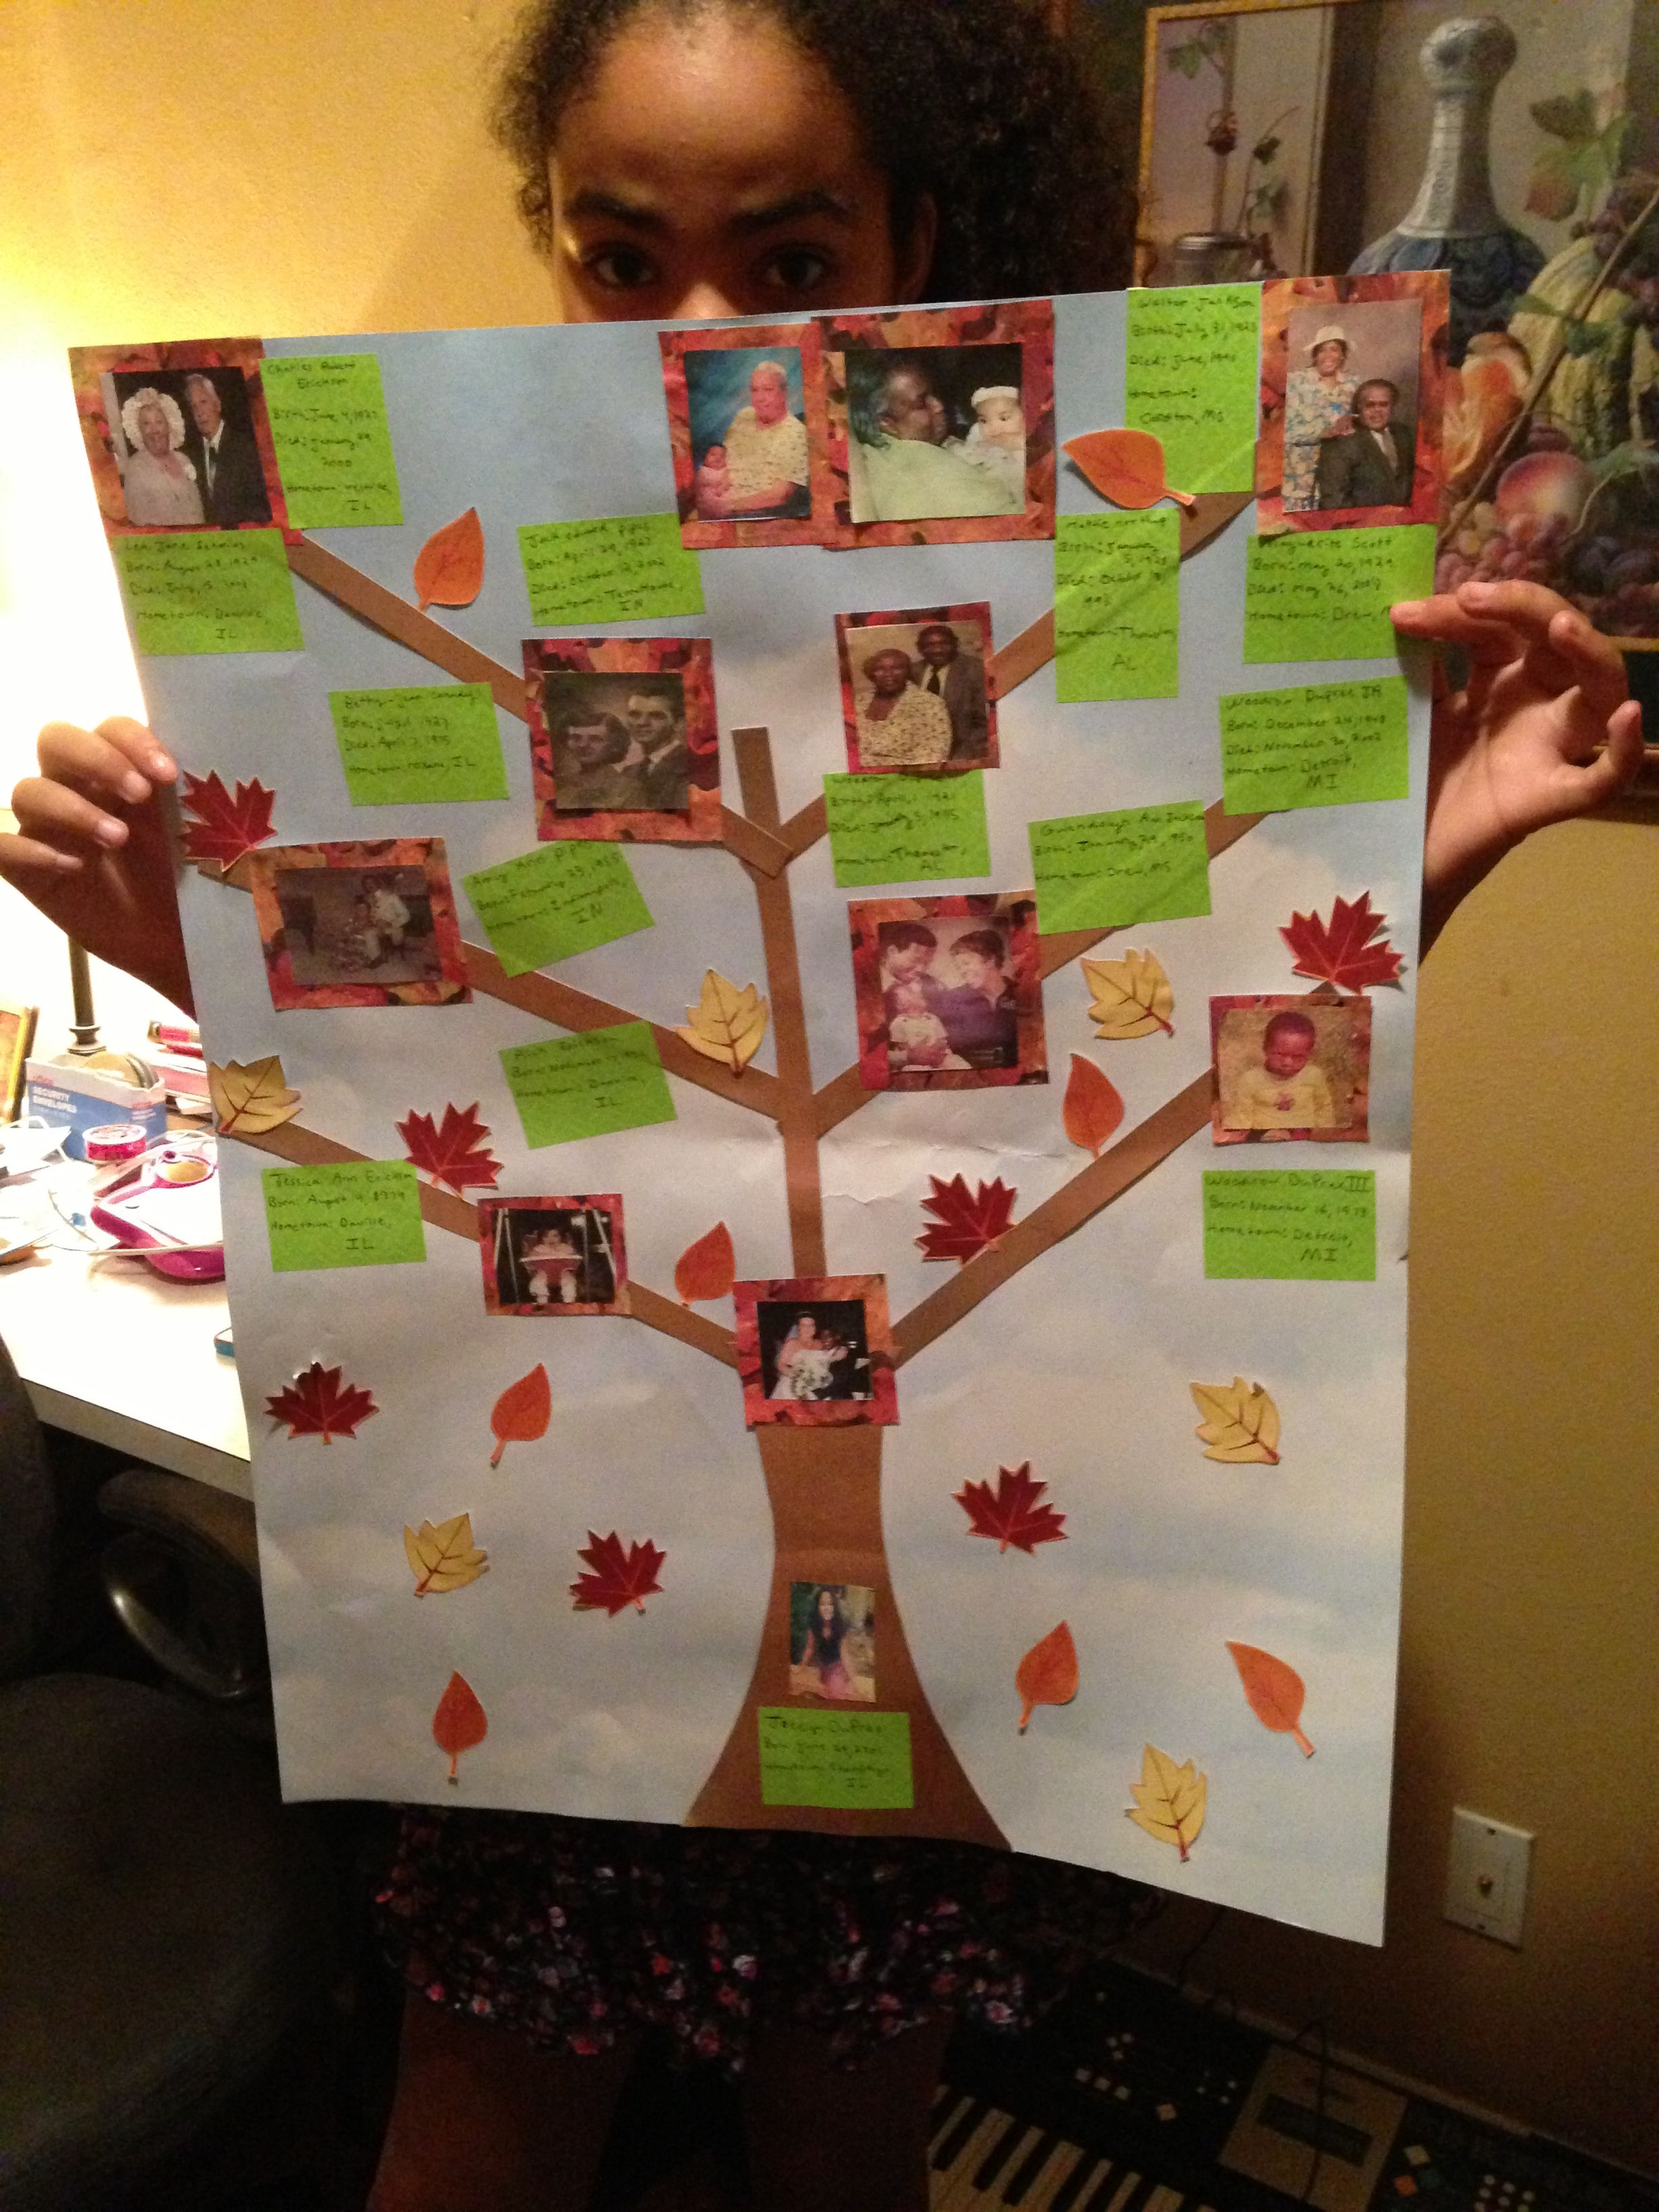 this family tree activity could be used to talk about family history